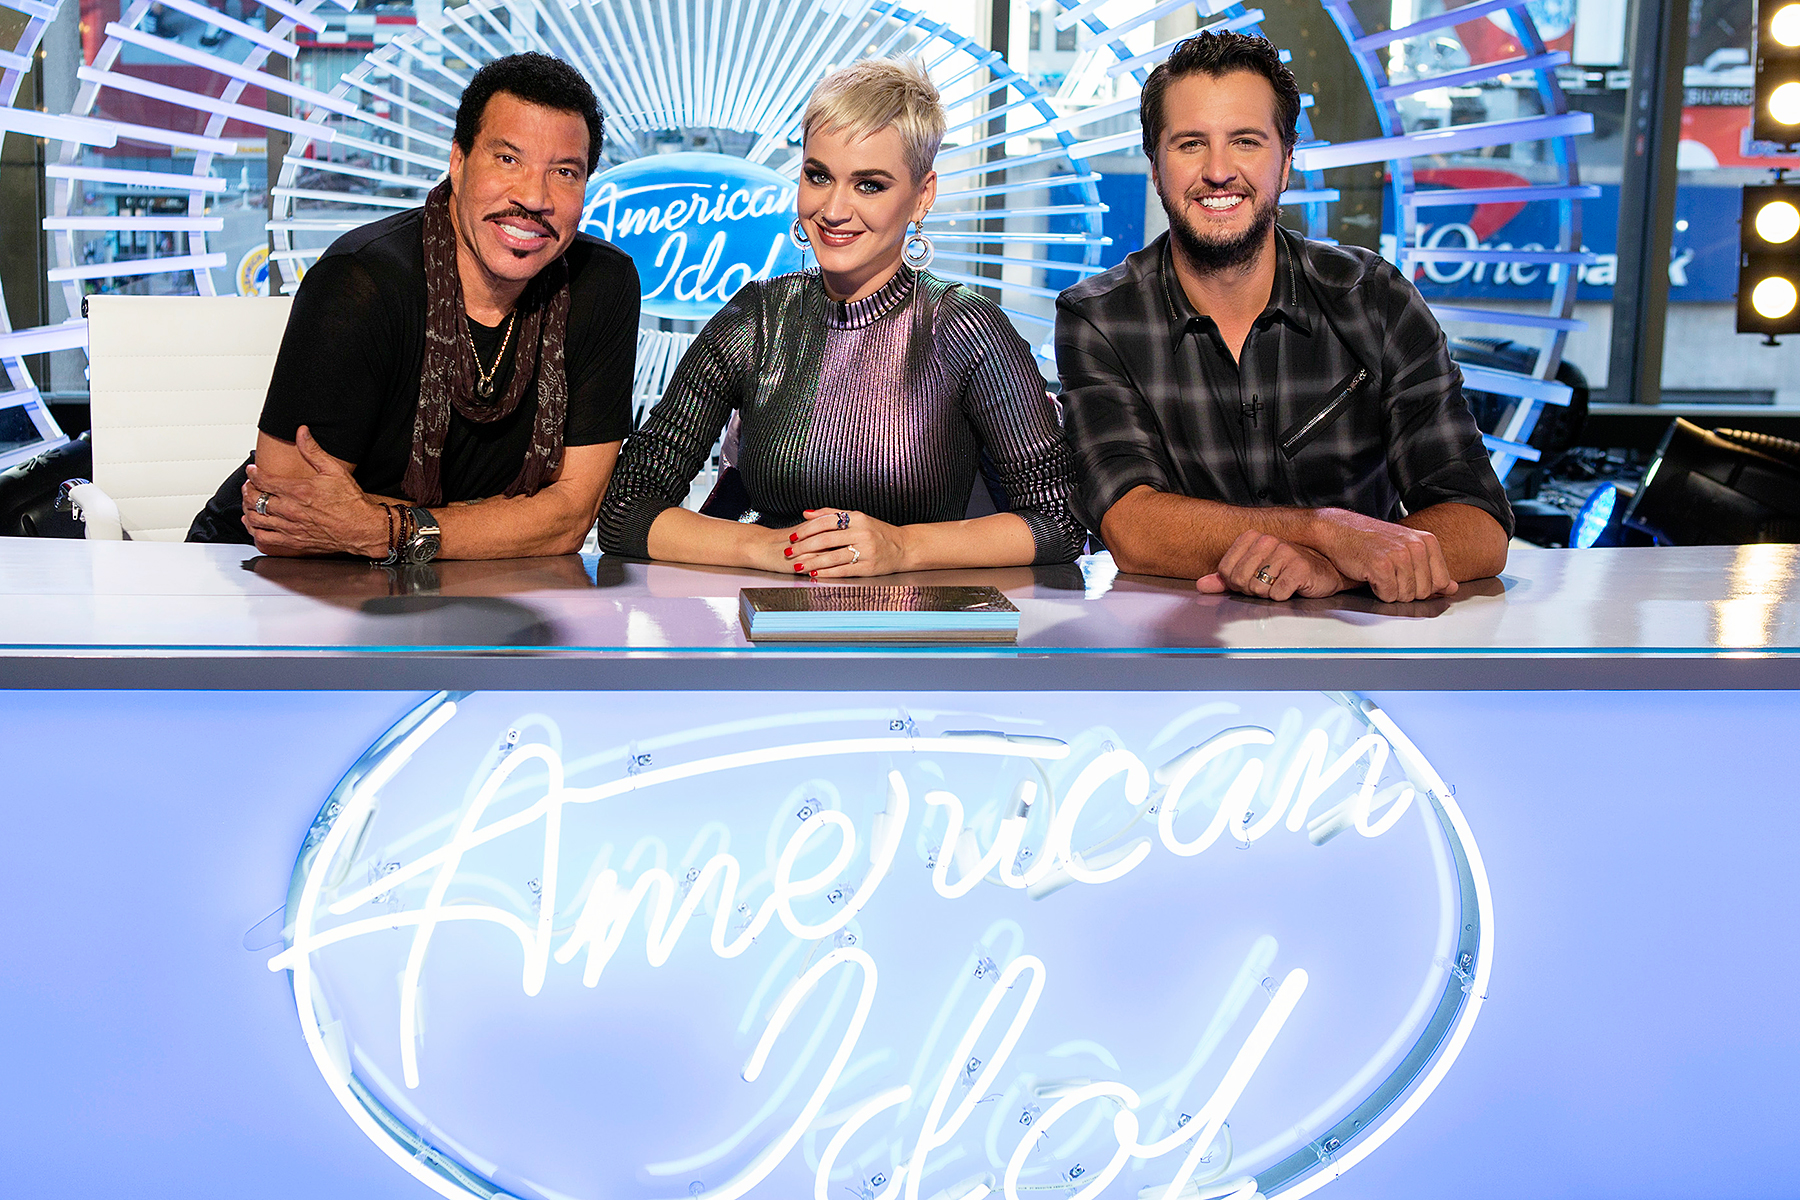 American Idol judges Lionel Richie Katy Perry Luke Bryan